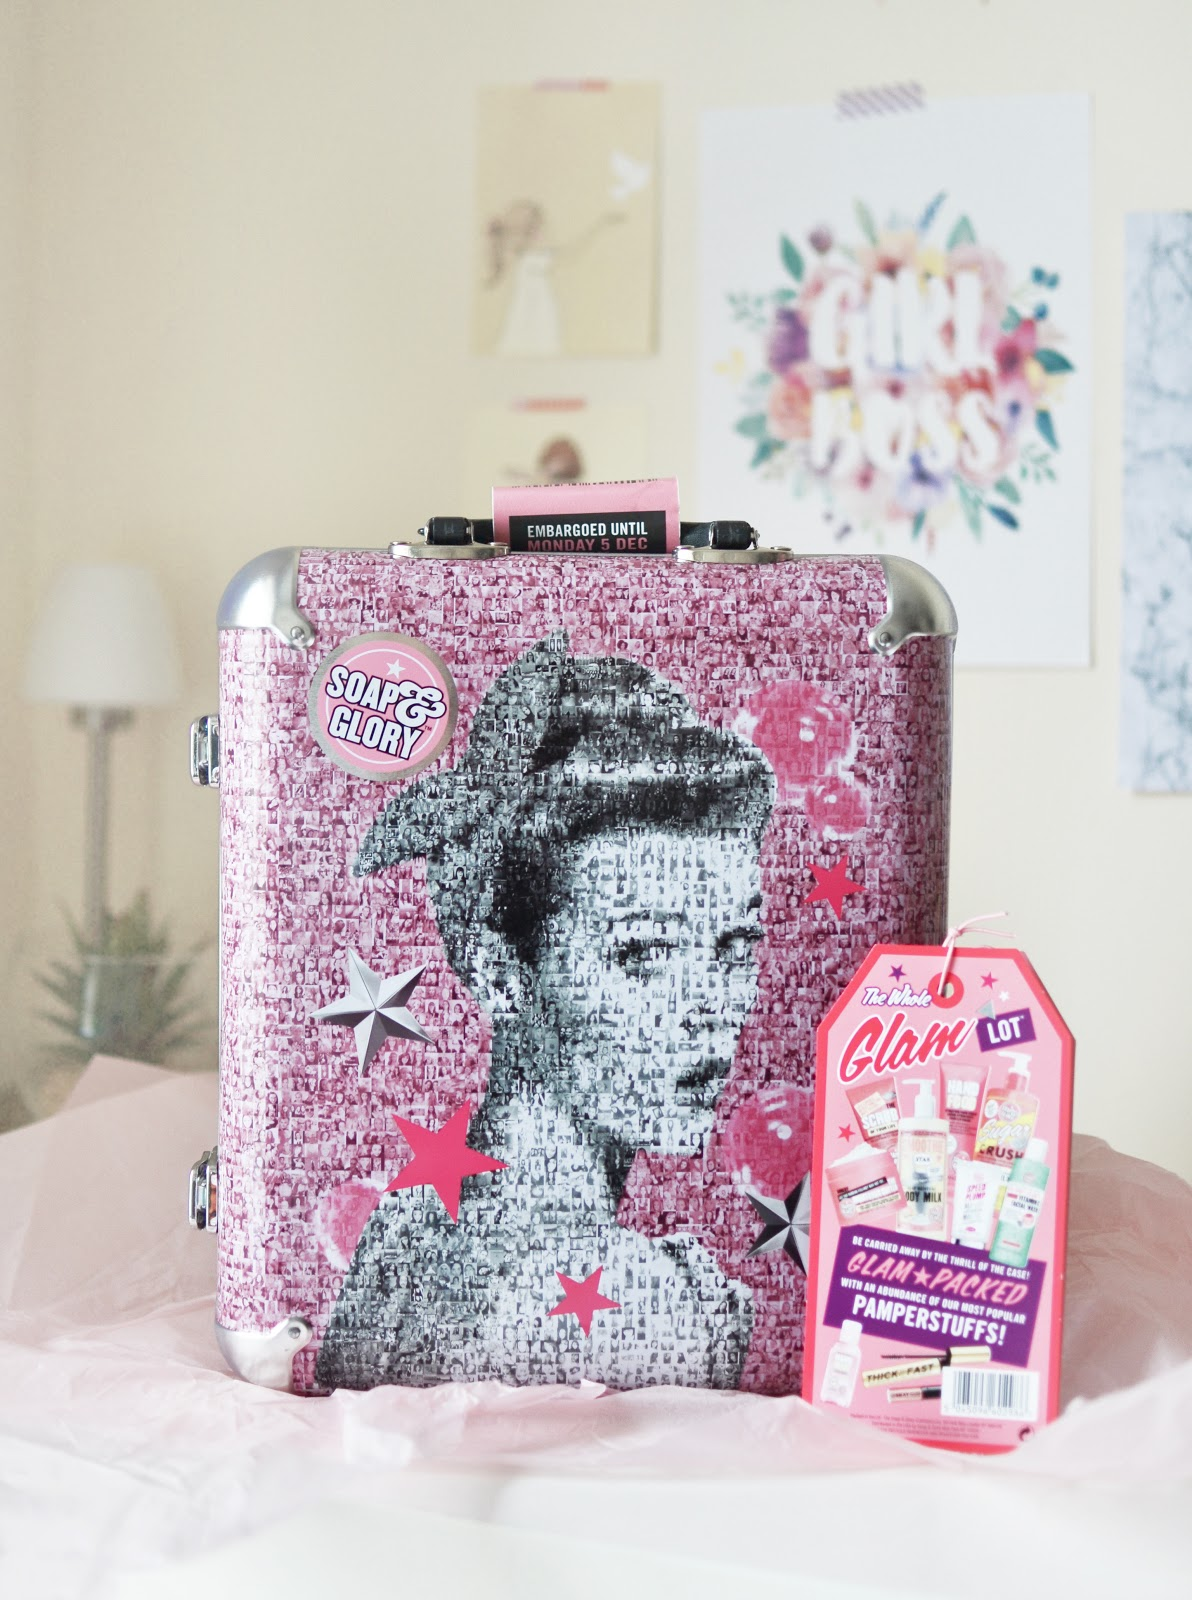 Soap & Glory's 2016 Star Gift